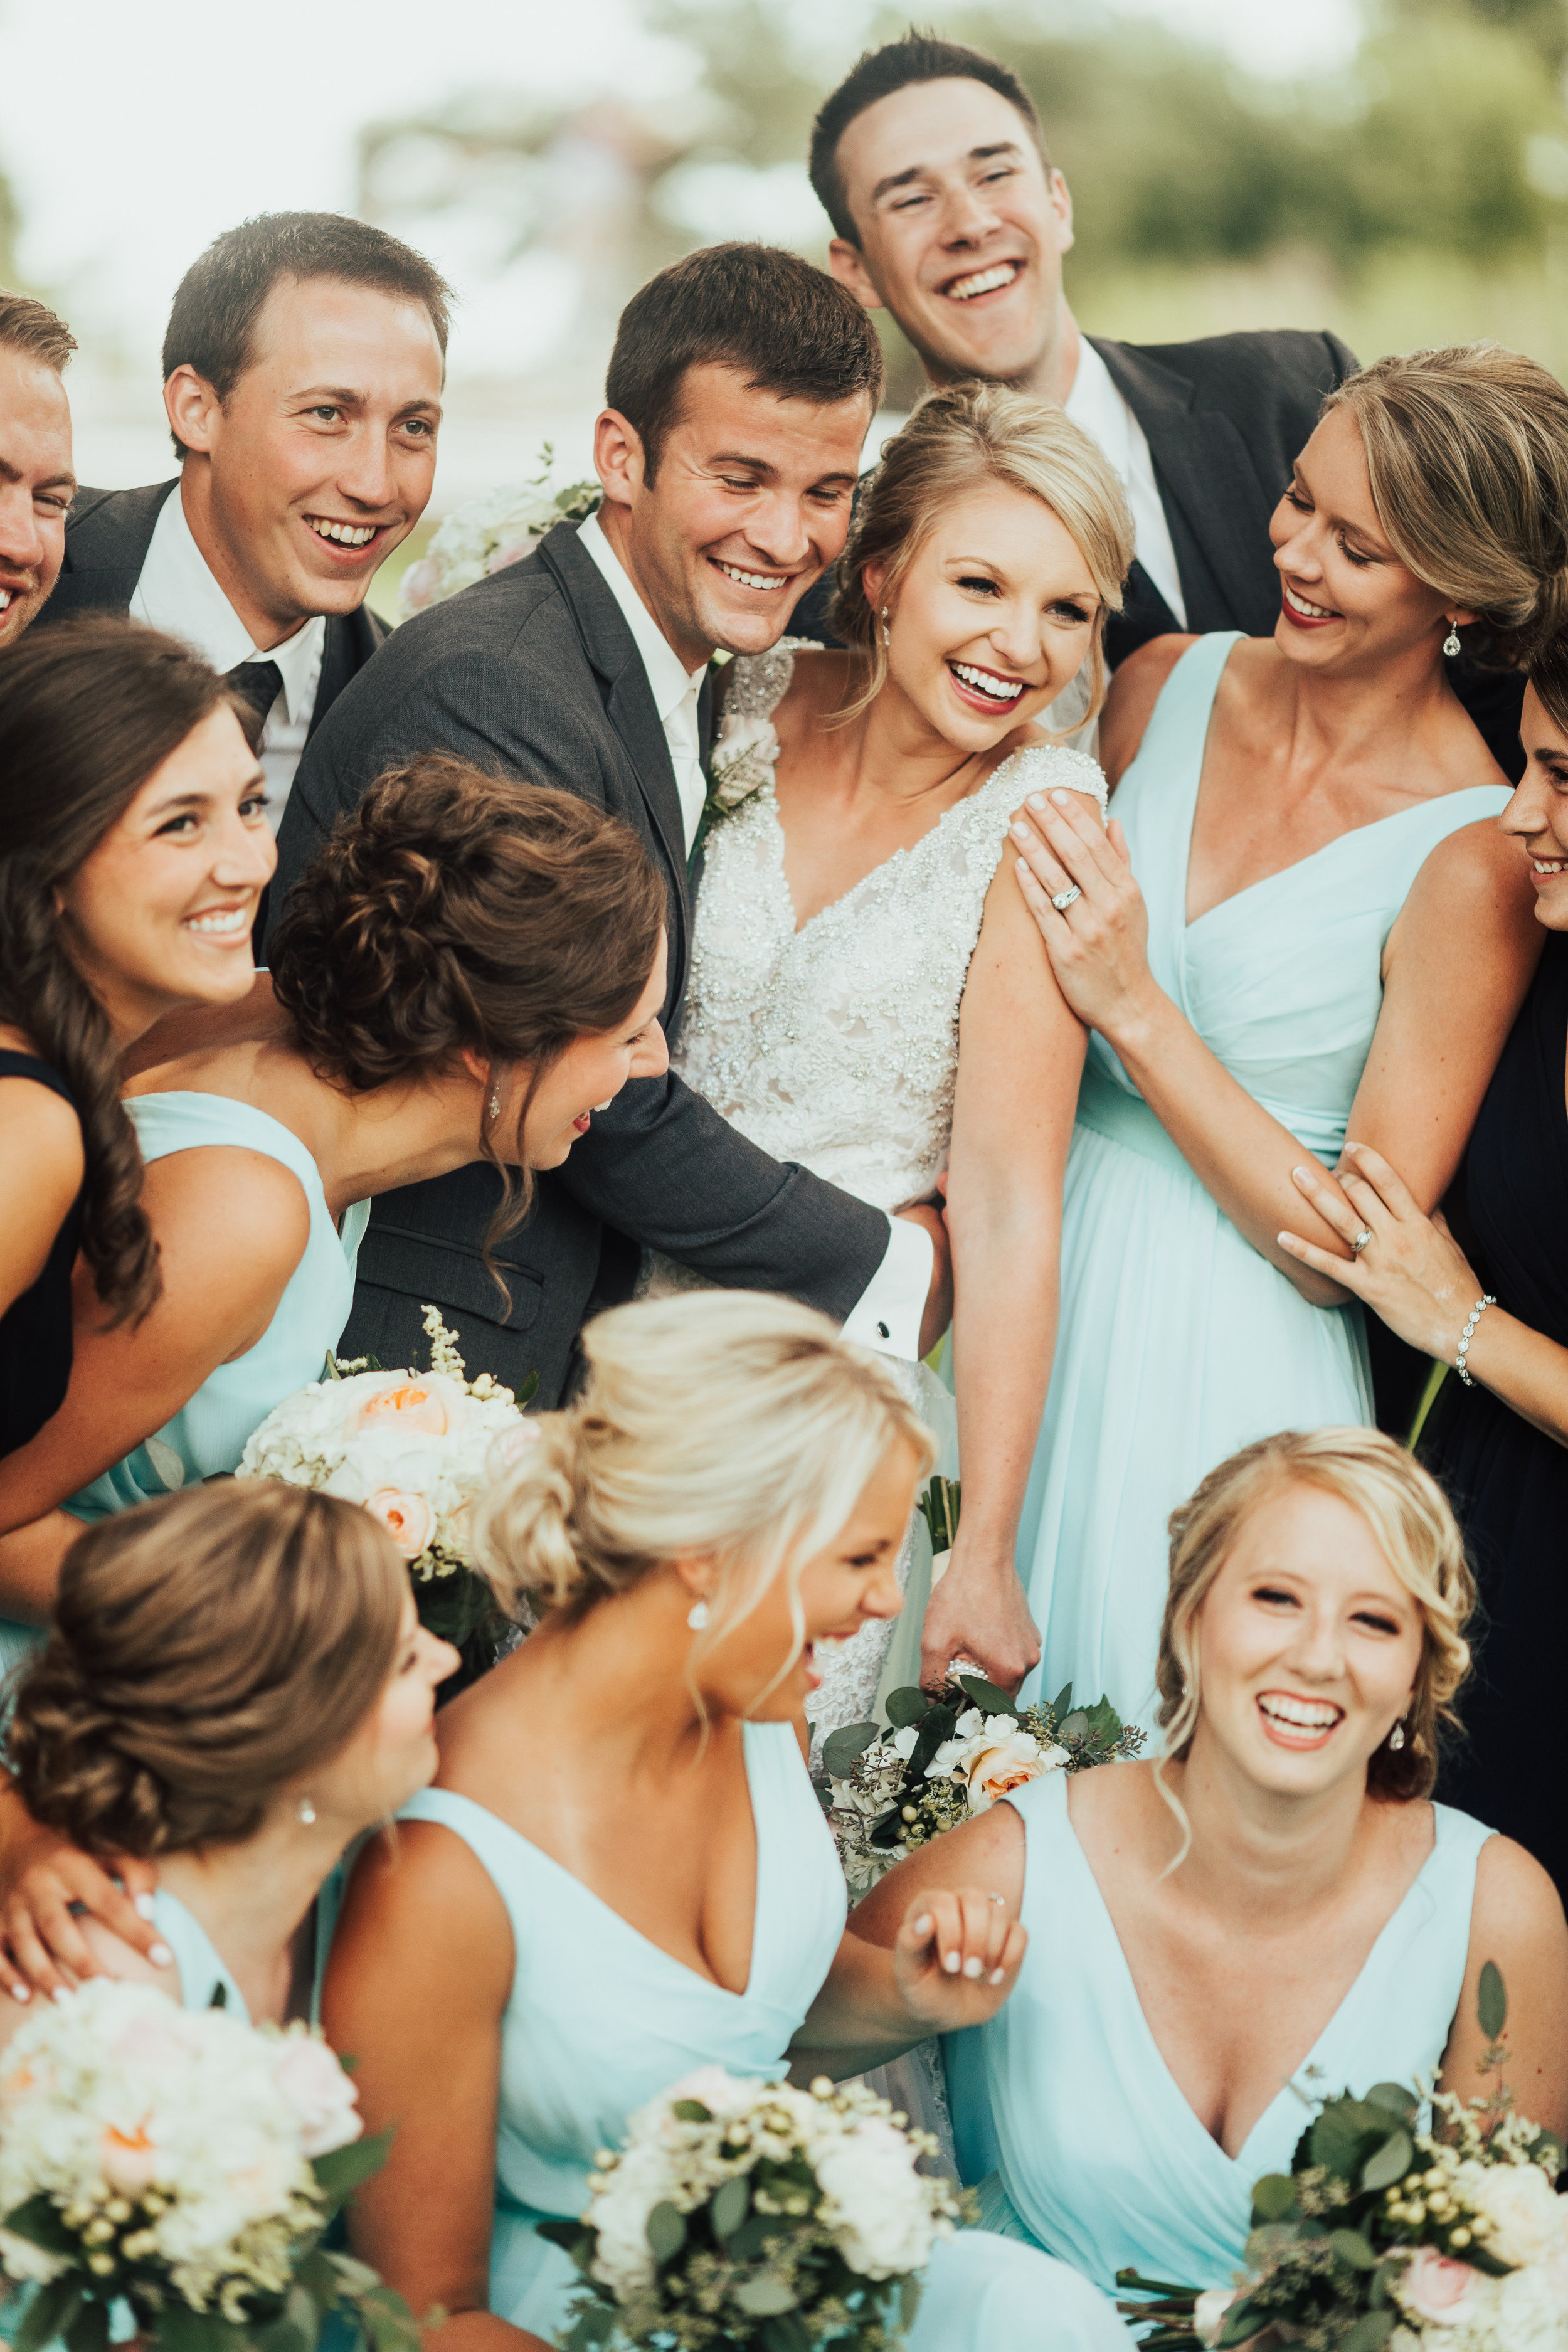 bridal party smush photo | brides in mint green and groomsmen in gray | Janelle Elise | Megan + Corey | Furber Farm | Sixpence Events | A Vintage Touch Weddings84.jpg